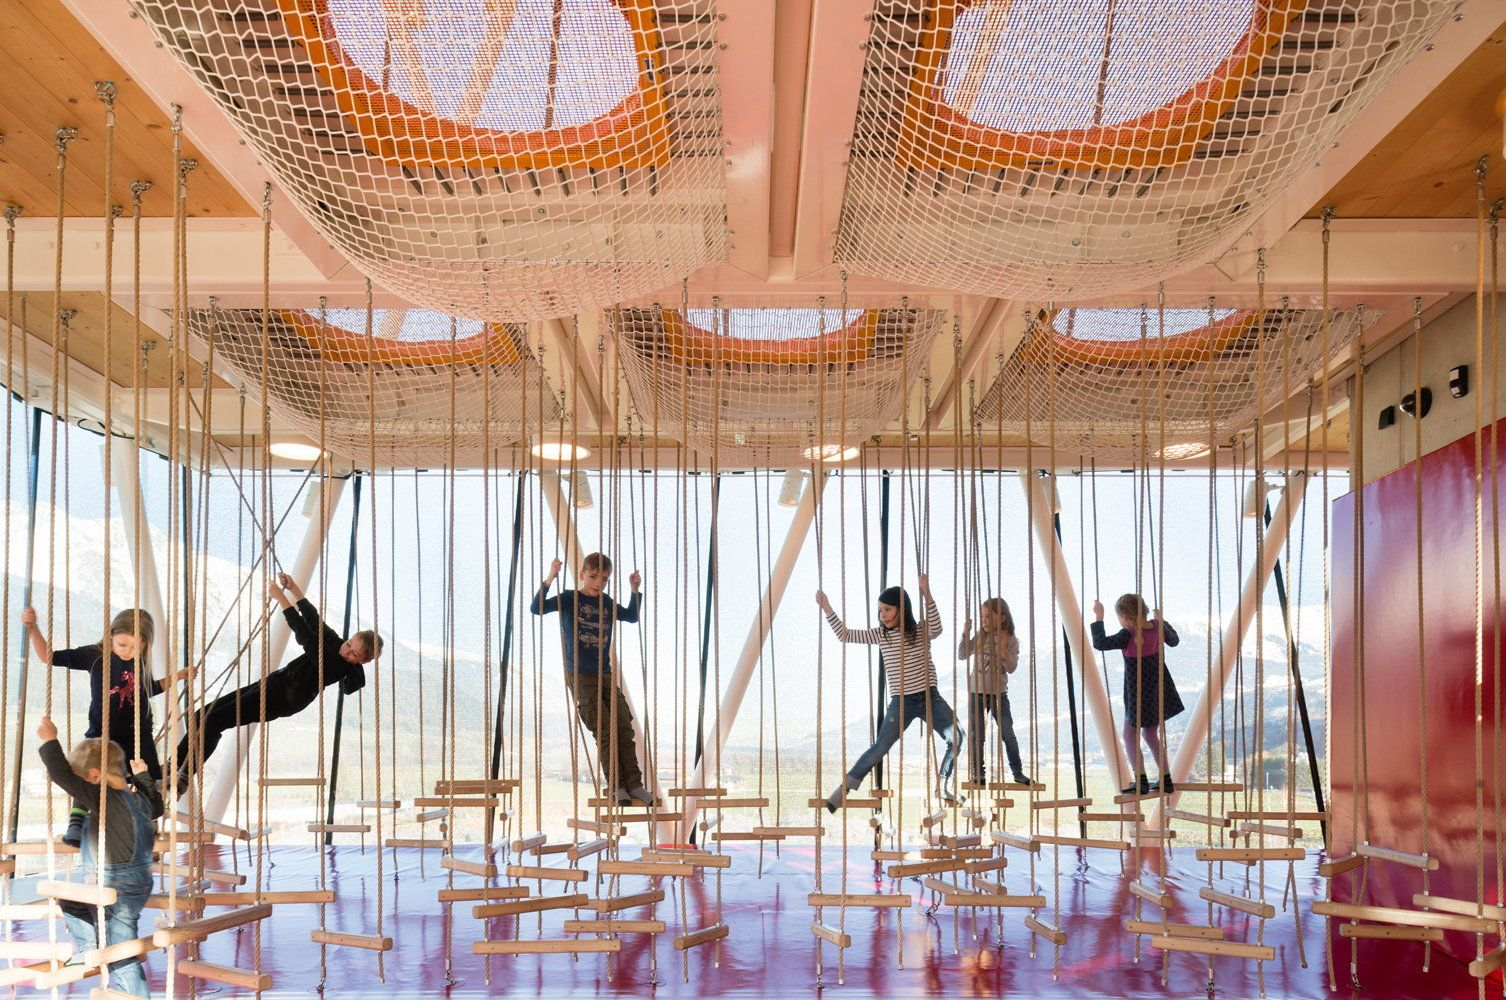 Shaping Interaction Ausstellung Zu Snohetta In Munchen 놀이터 전시관